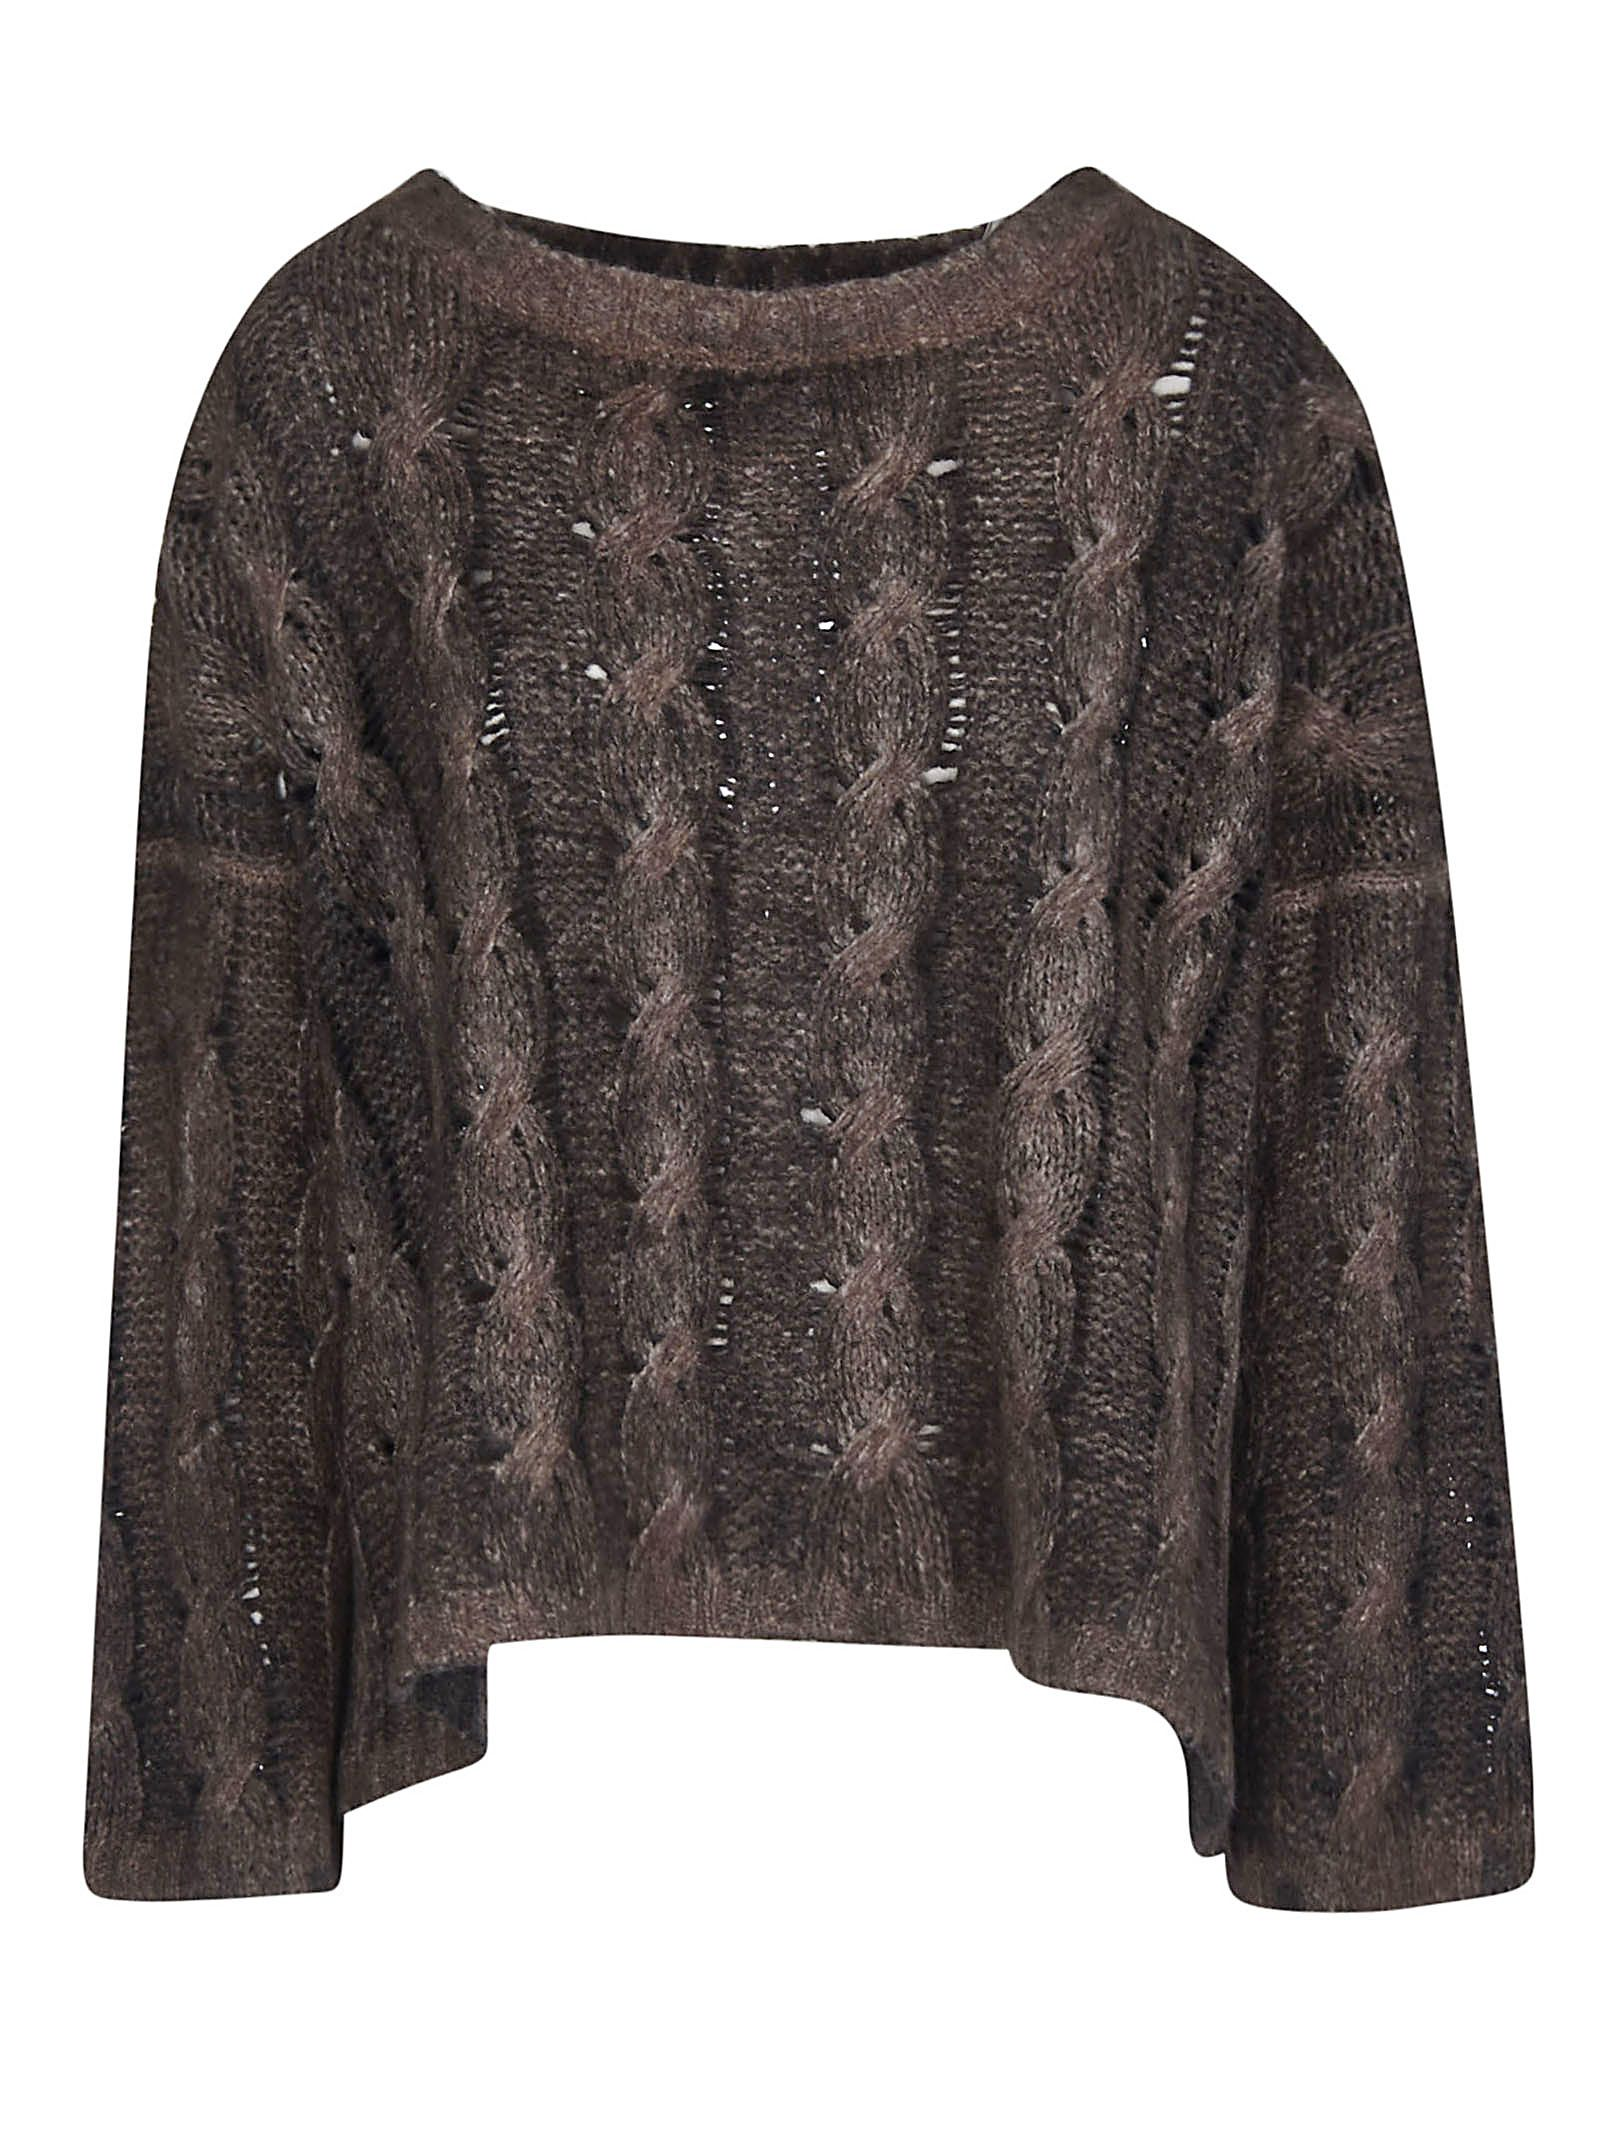 F CASHMERE F Cashmere Cropped Knitted Sweater in Walnut